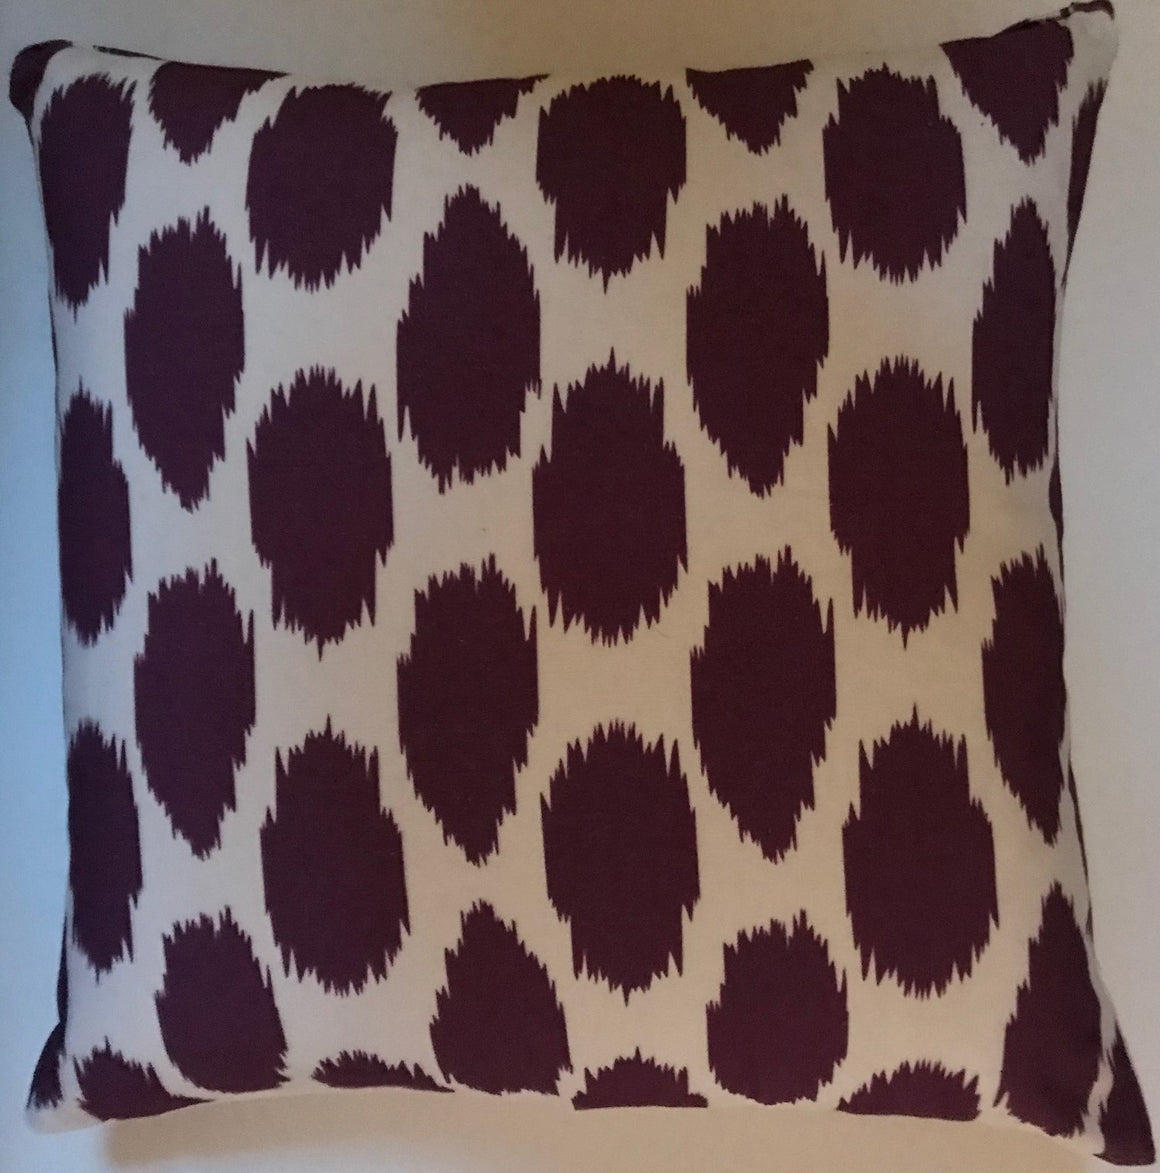 OC022 Cheeky Ikat Print Grape organic cotton pillow cover